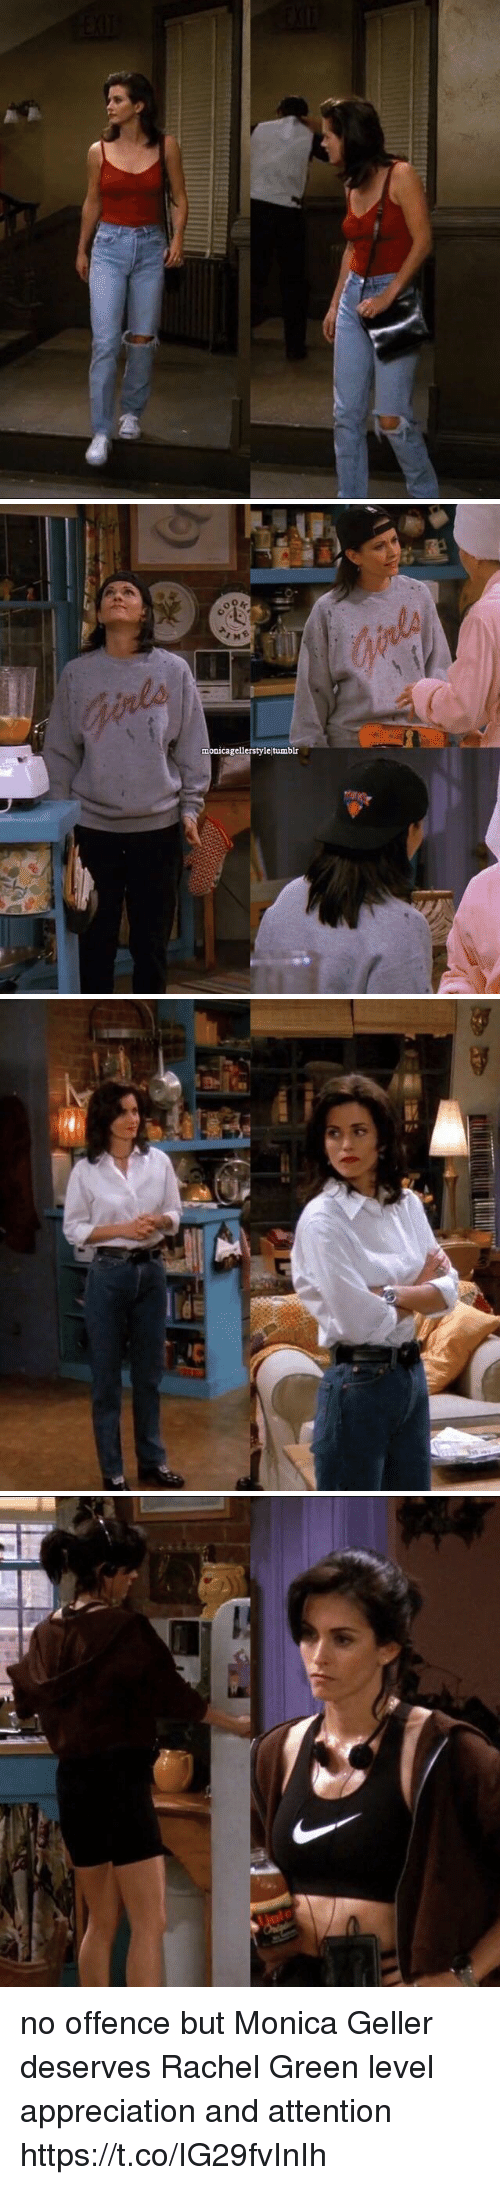 Tumblr, Monica Geller, and Rachel Green: monicagellerstyle tumblr no offence but Monica Geller deserves Rachel Green level appreciation and attention https://t.co/IG29fvInIh